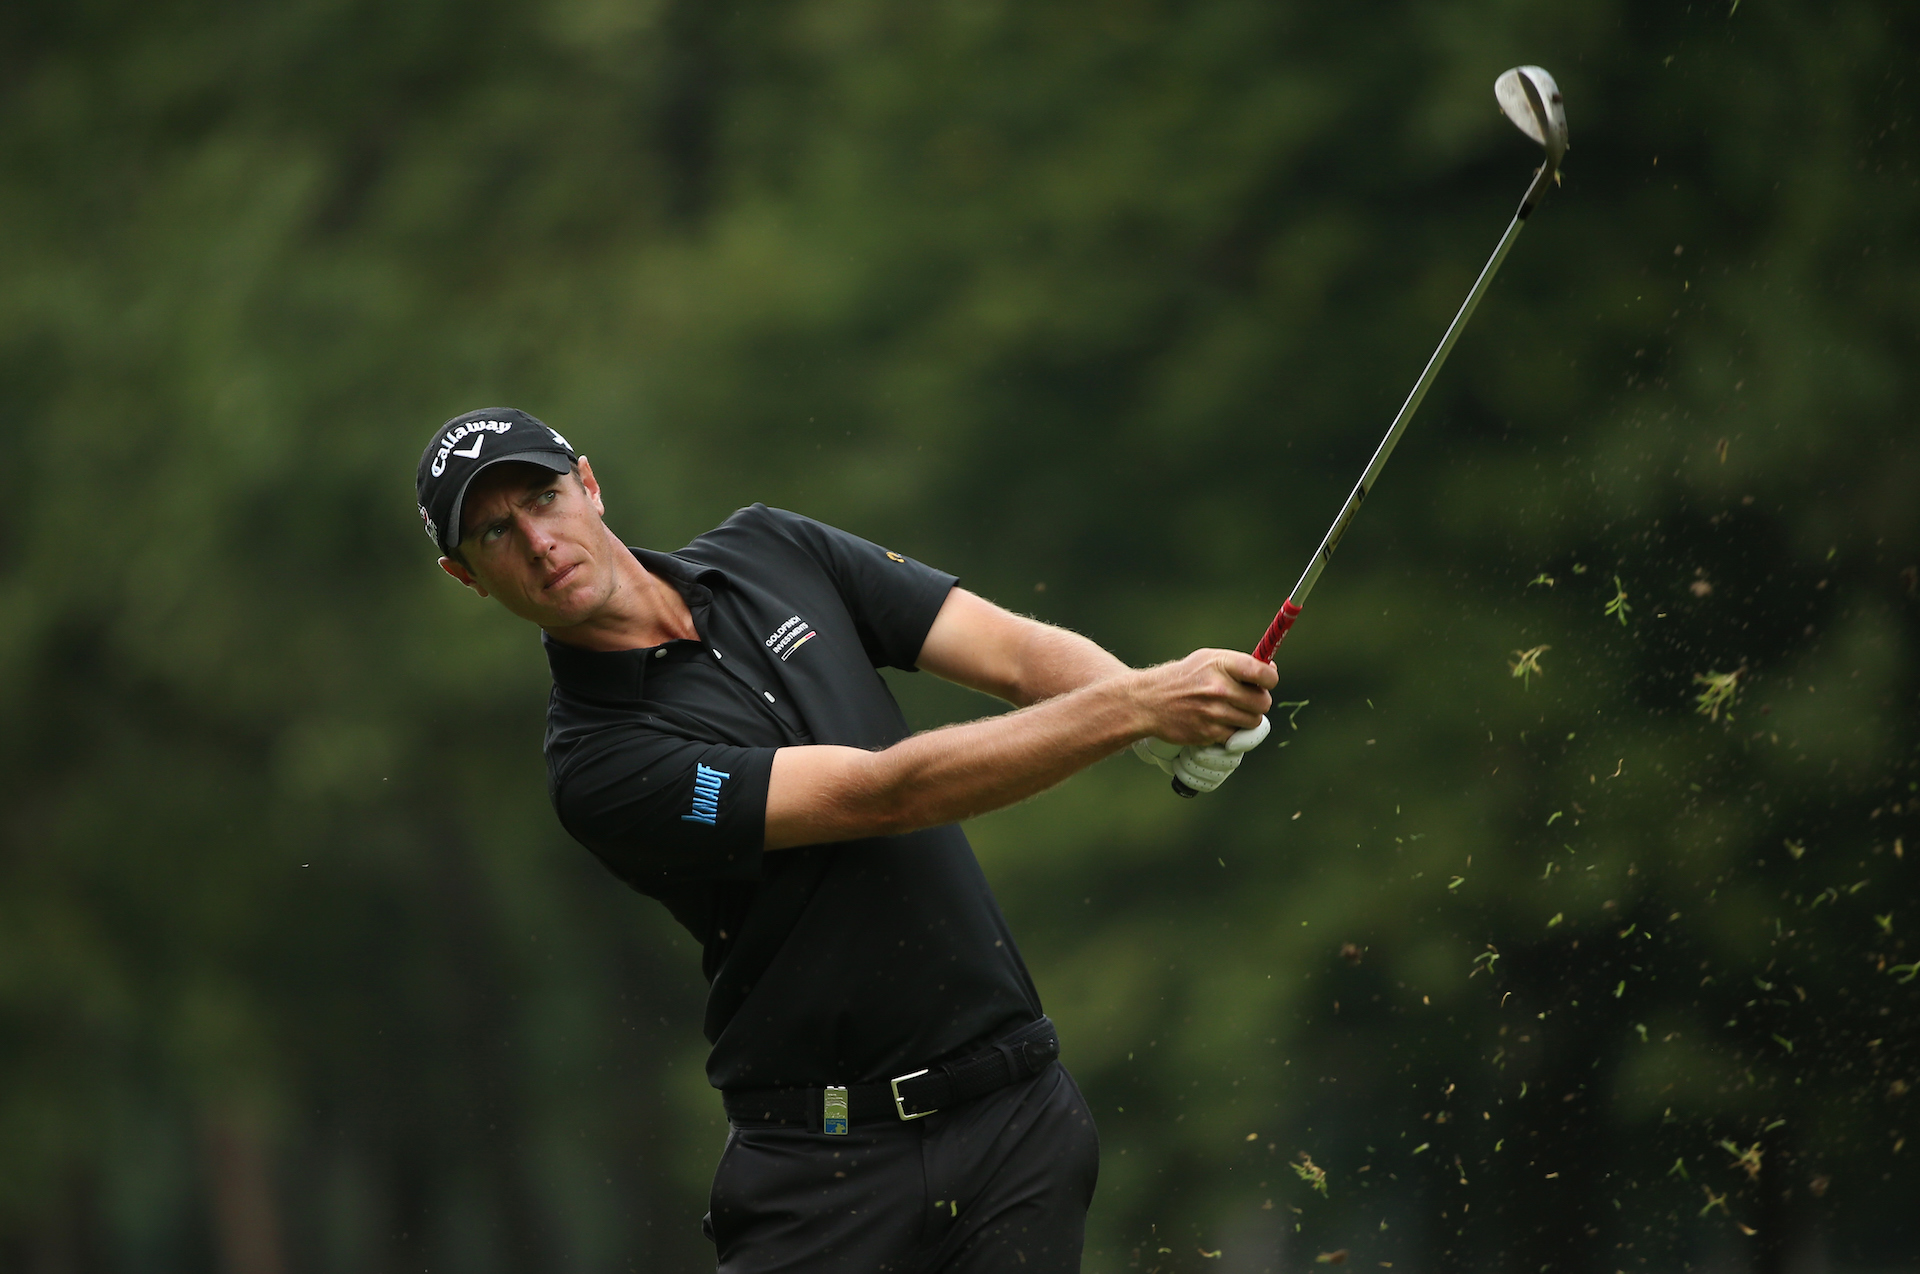 Star billing for Niall Horan at Wentworth Pro Am